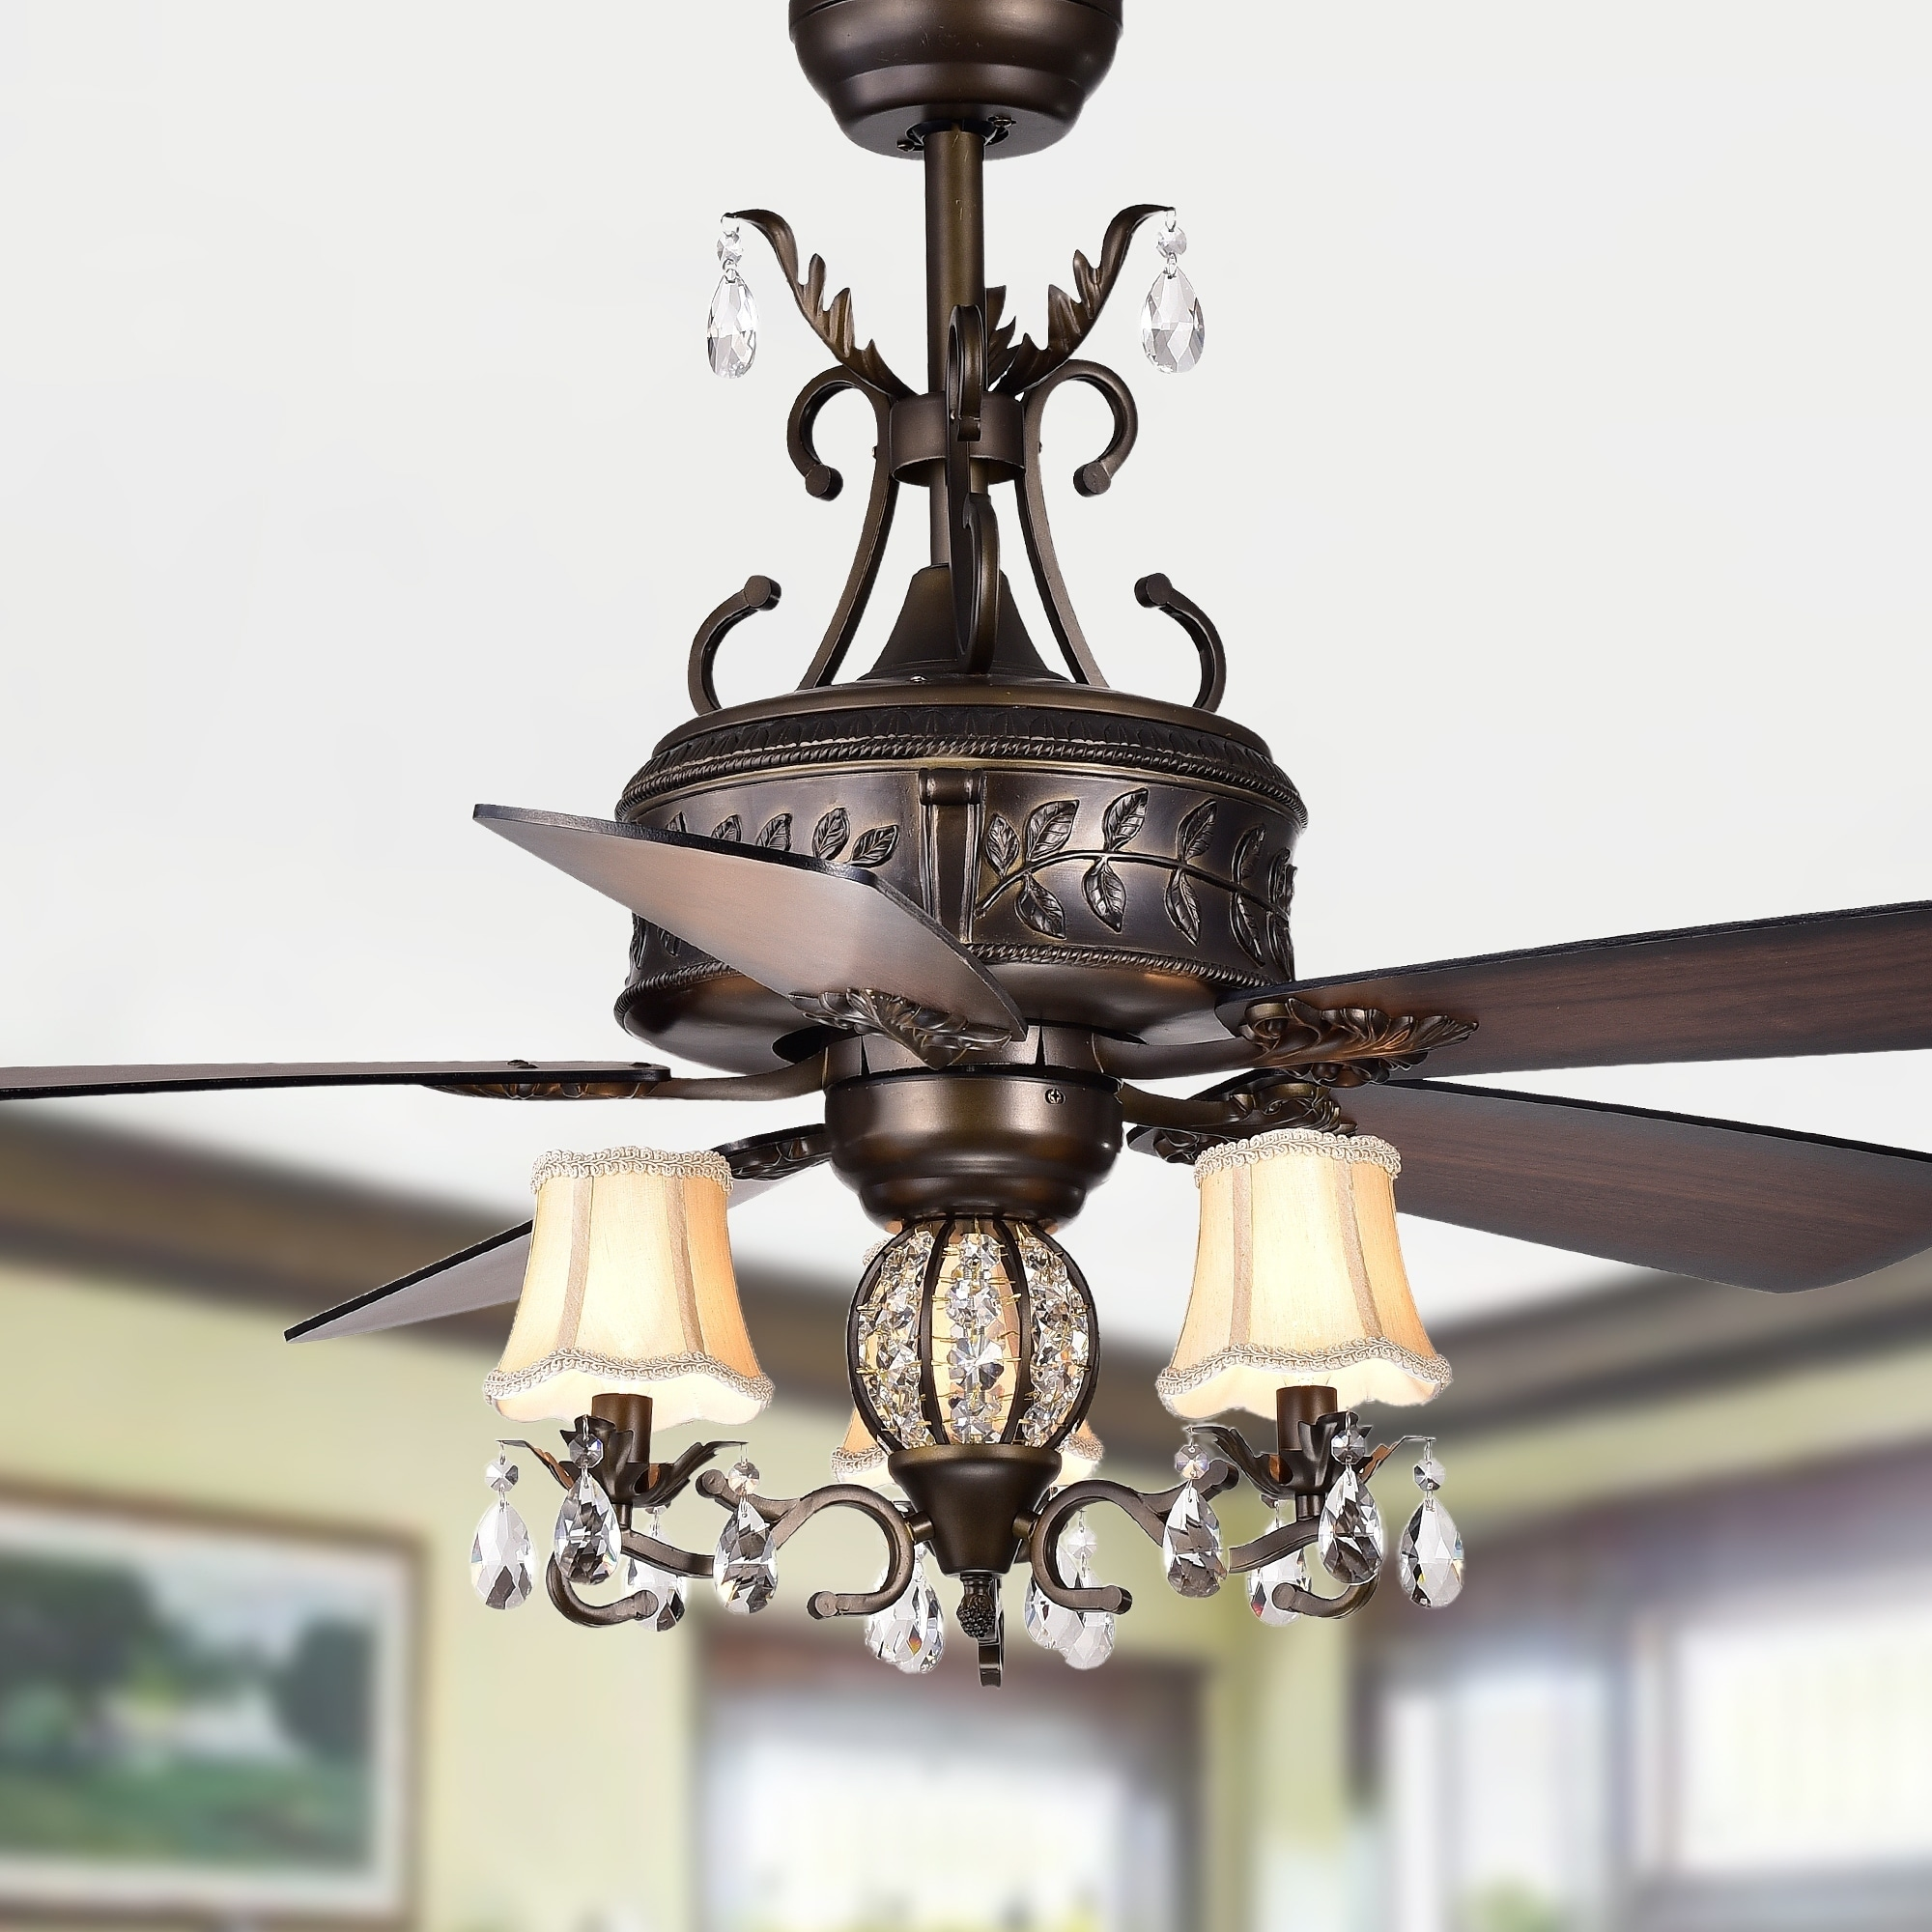 Shop Black Friday Deals On Firtha 52 Inch 5 Blade Antique Lighted Ceiling Fans With Branched French Chandelier Optional Remote Overstock 18043284